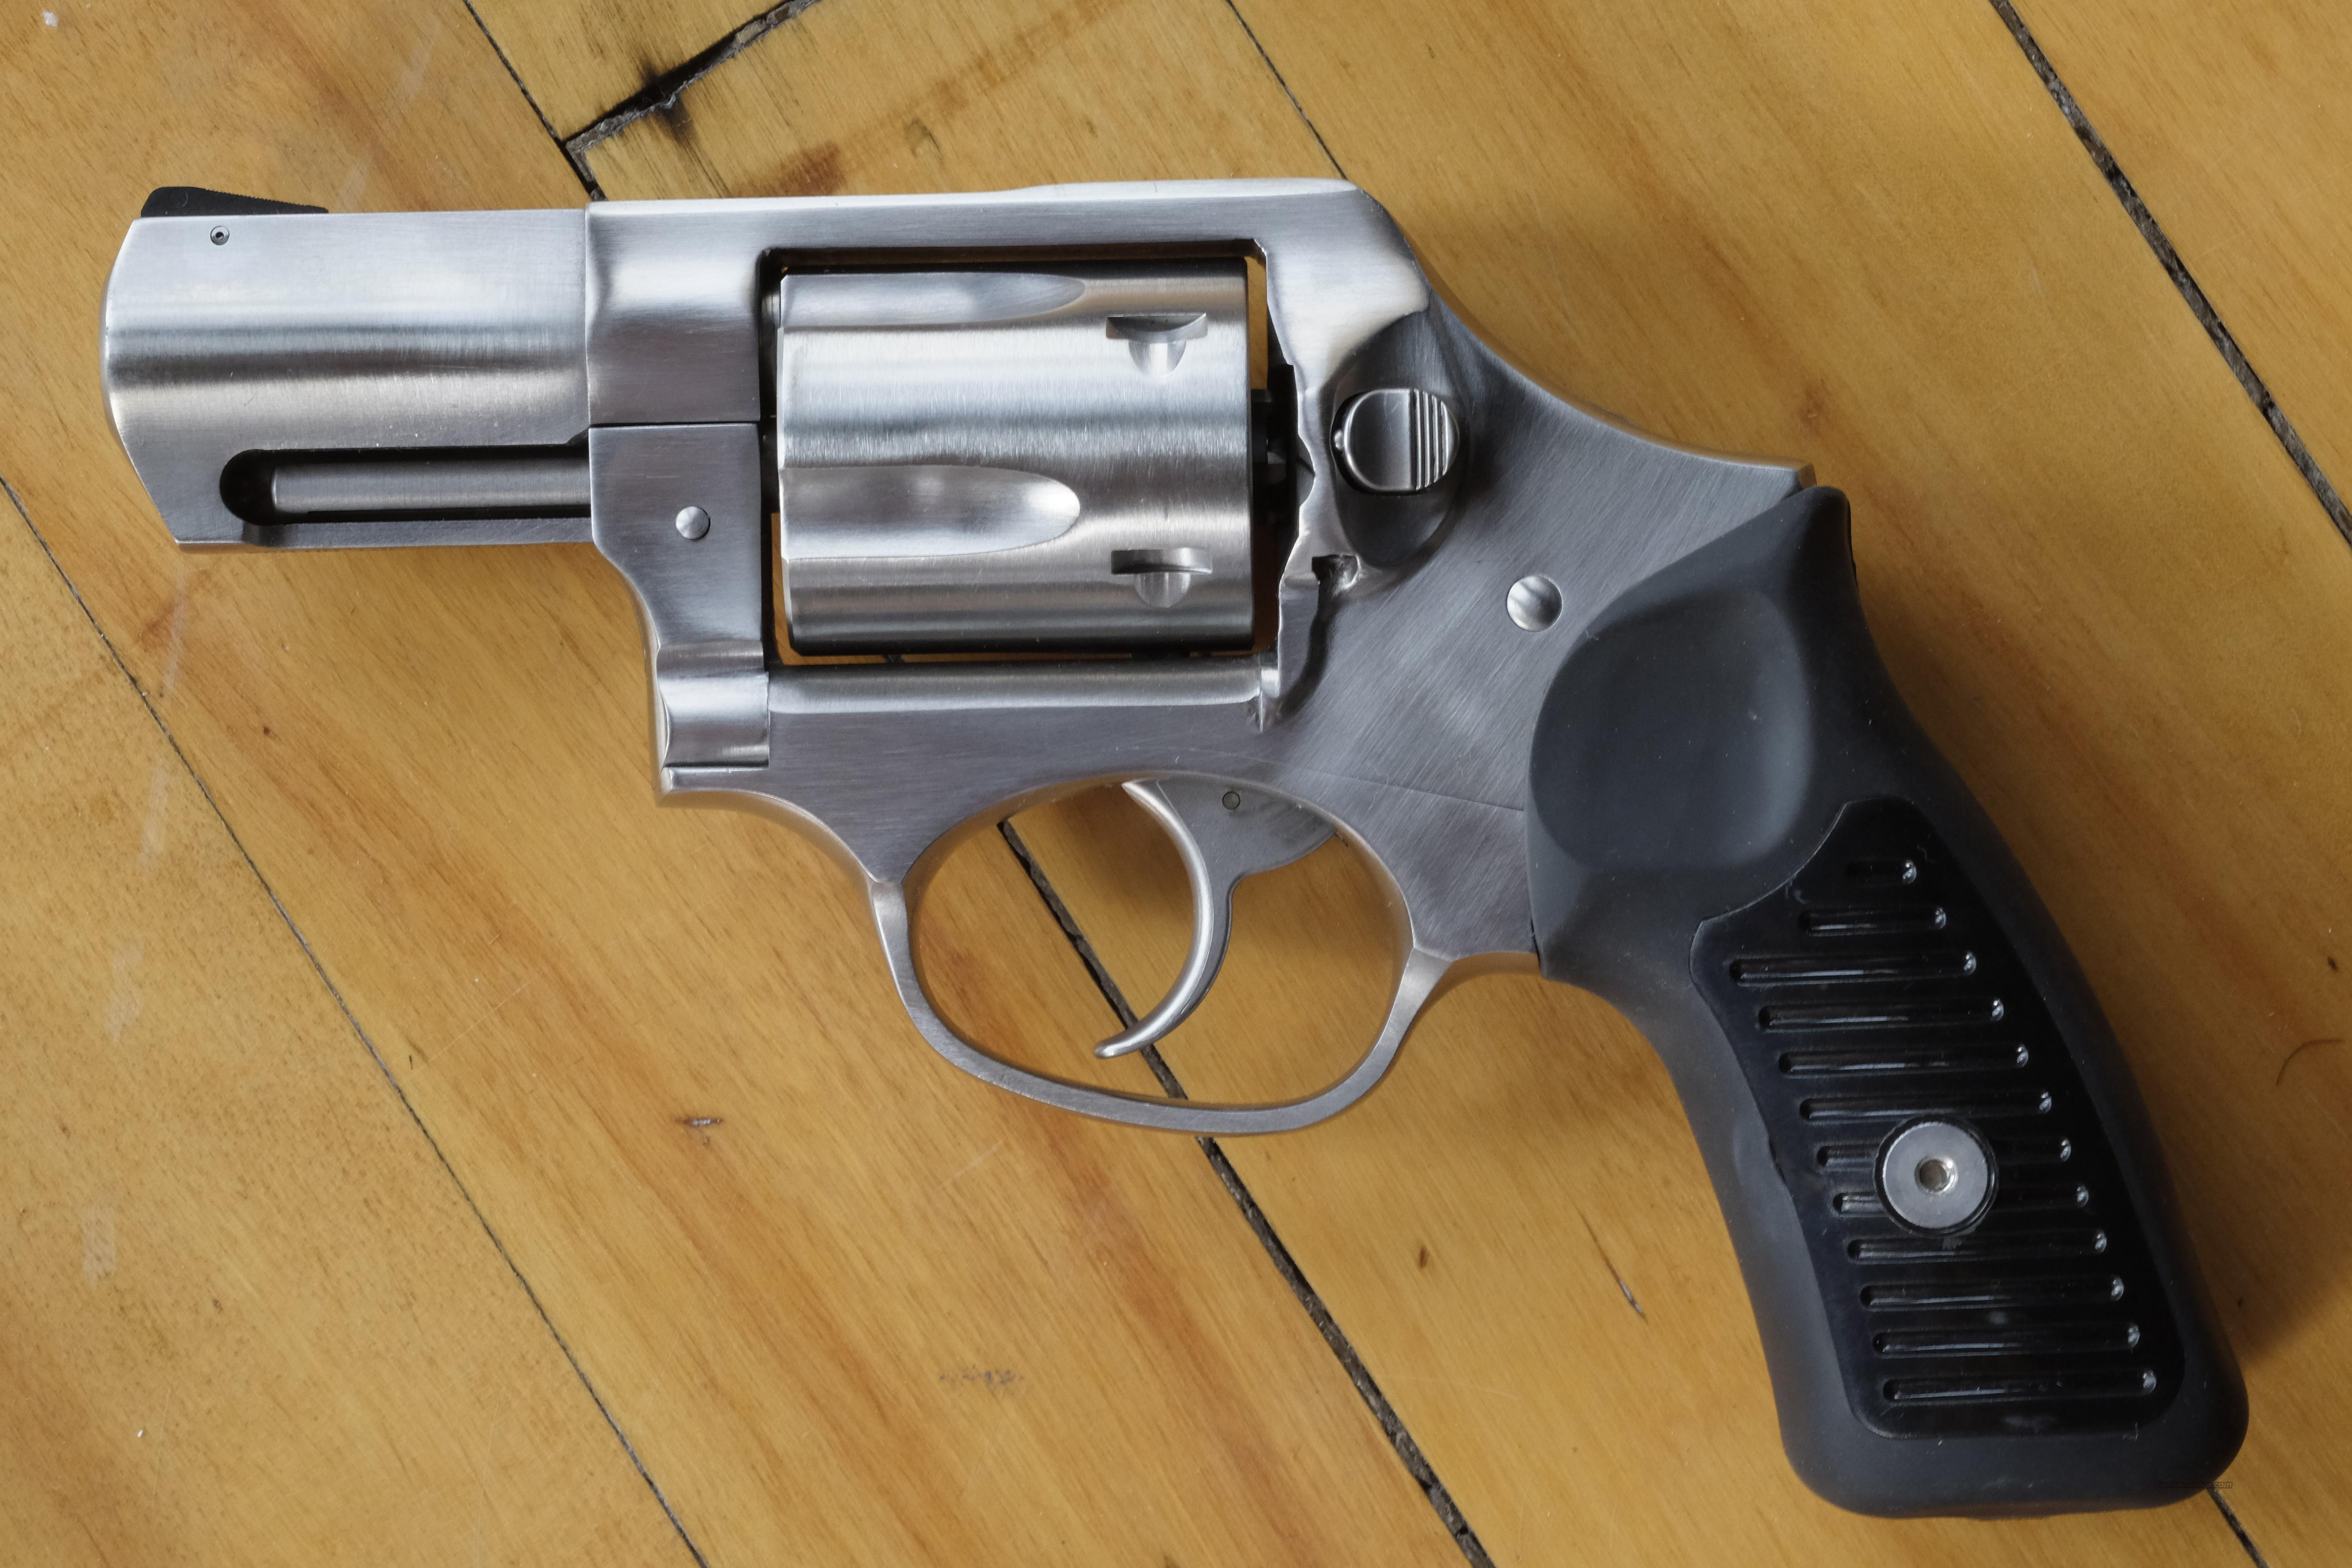 ruger sp101 357 2 1/2 SS spurless hammer  Guns > Pistols > Ruger Double Action Revolver > SP101 Type